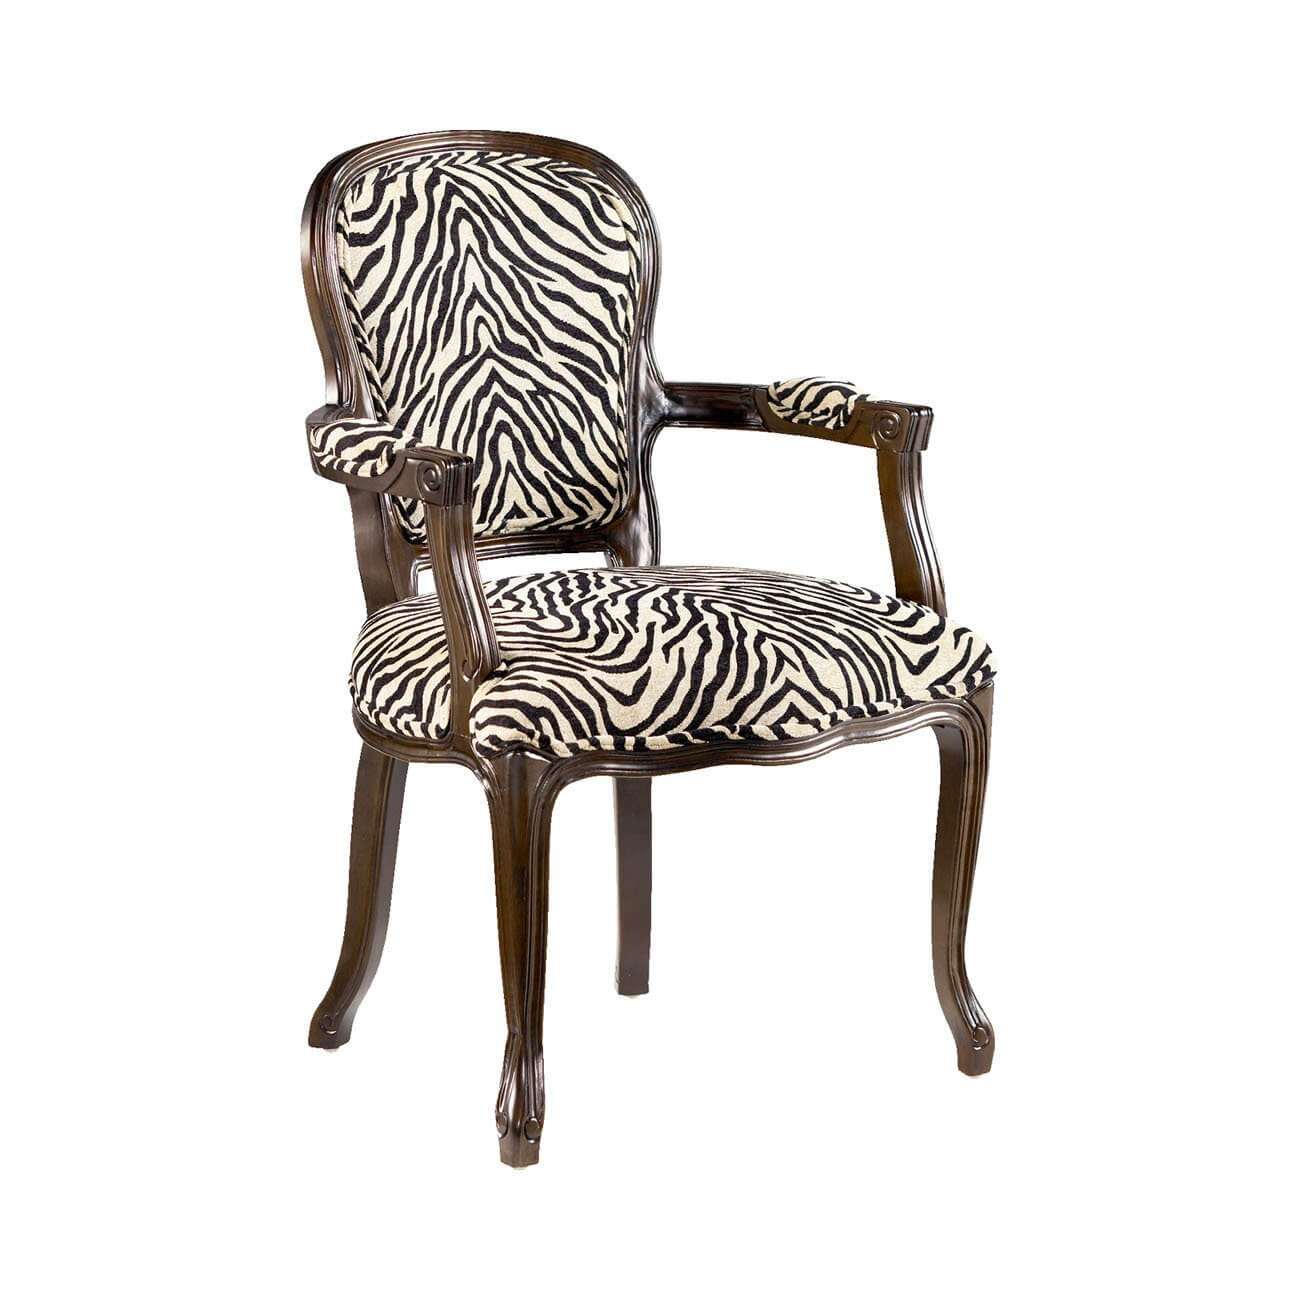 Superieur More Zebra Print Chairs: